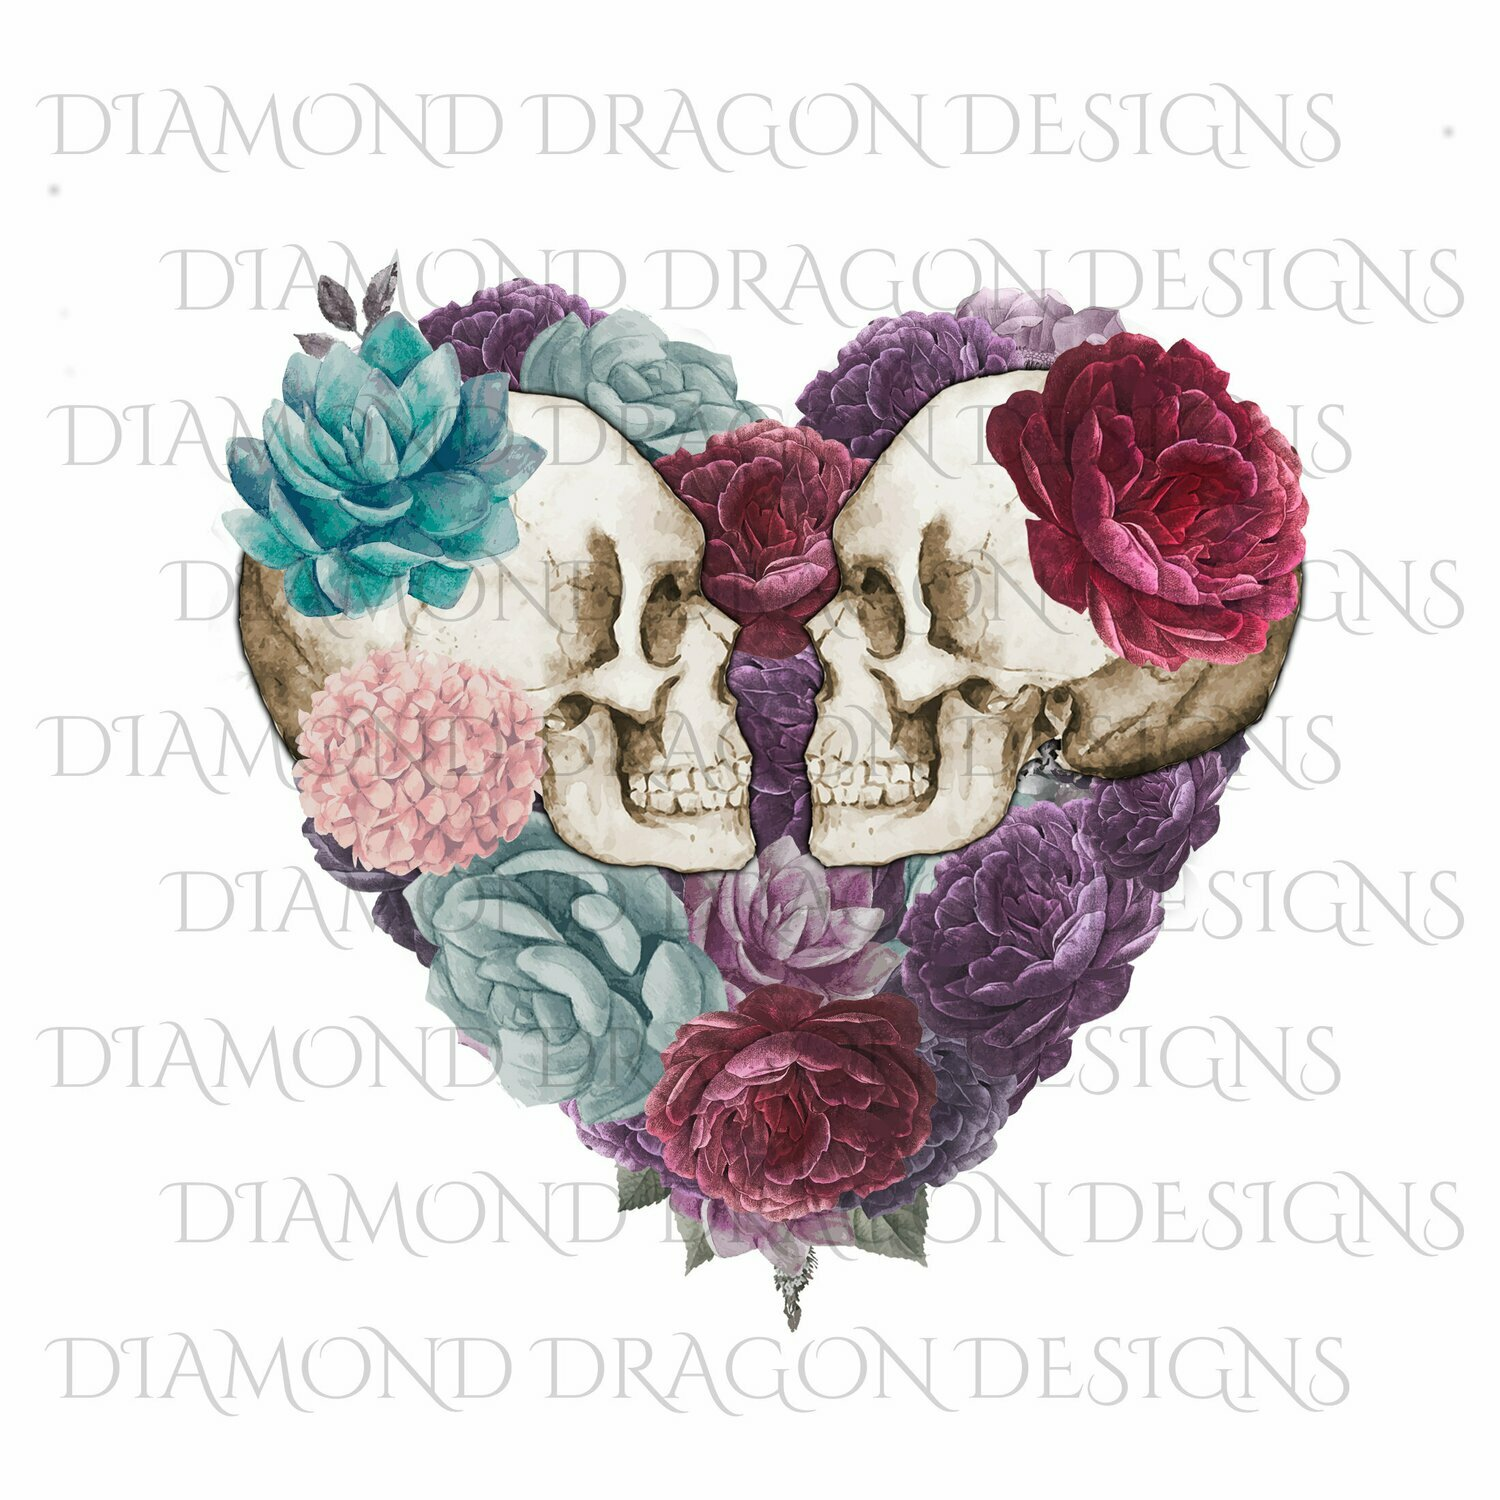 Skulls - Floral Skull, Skulls, Vintage Floral Skull, Heart, Skull with Flowers, Floral Heart Skull, Watercolor, Digital Image